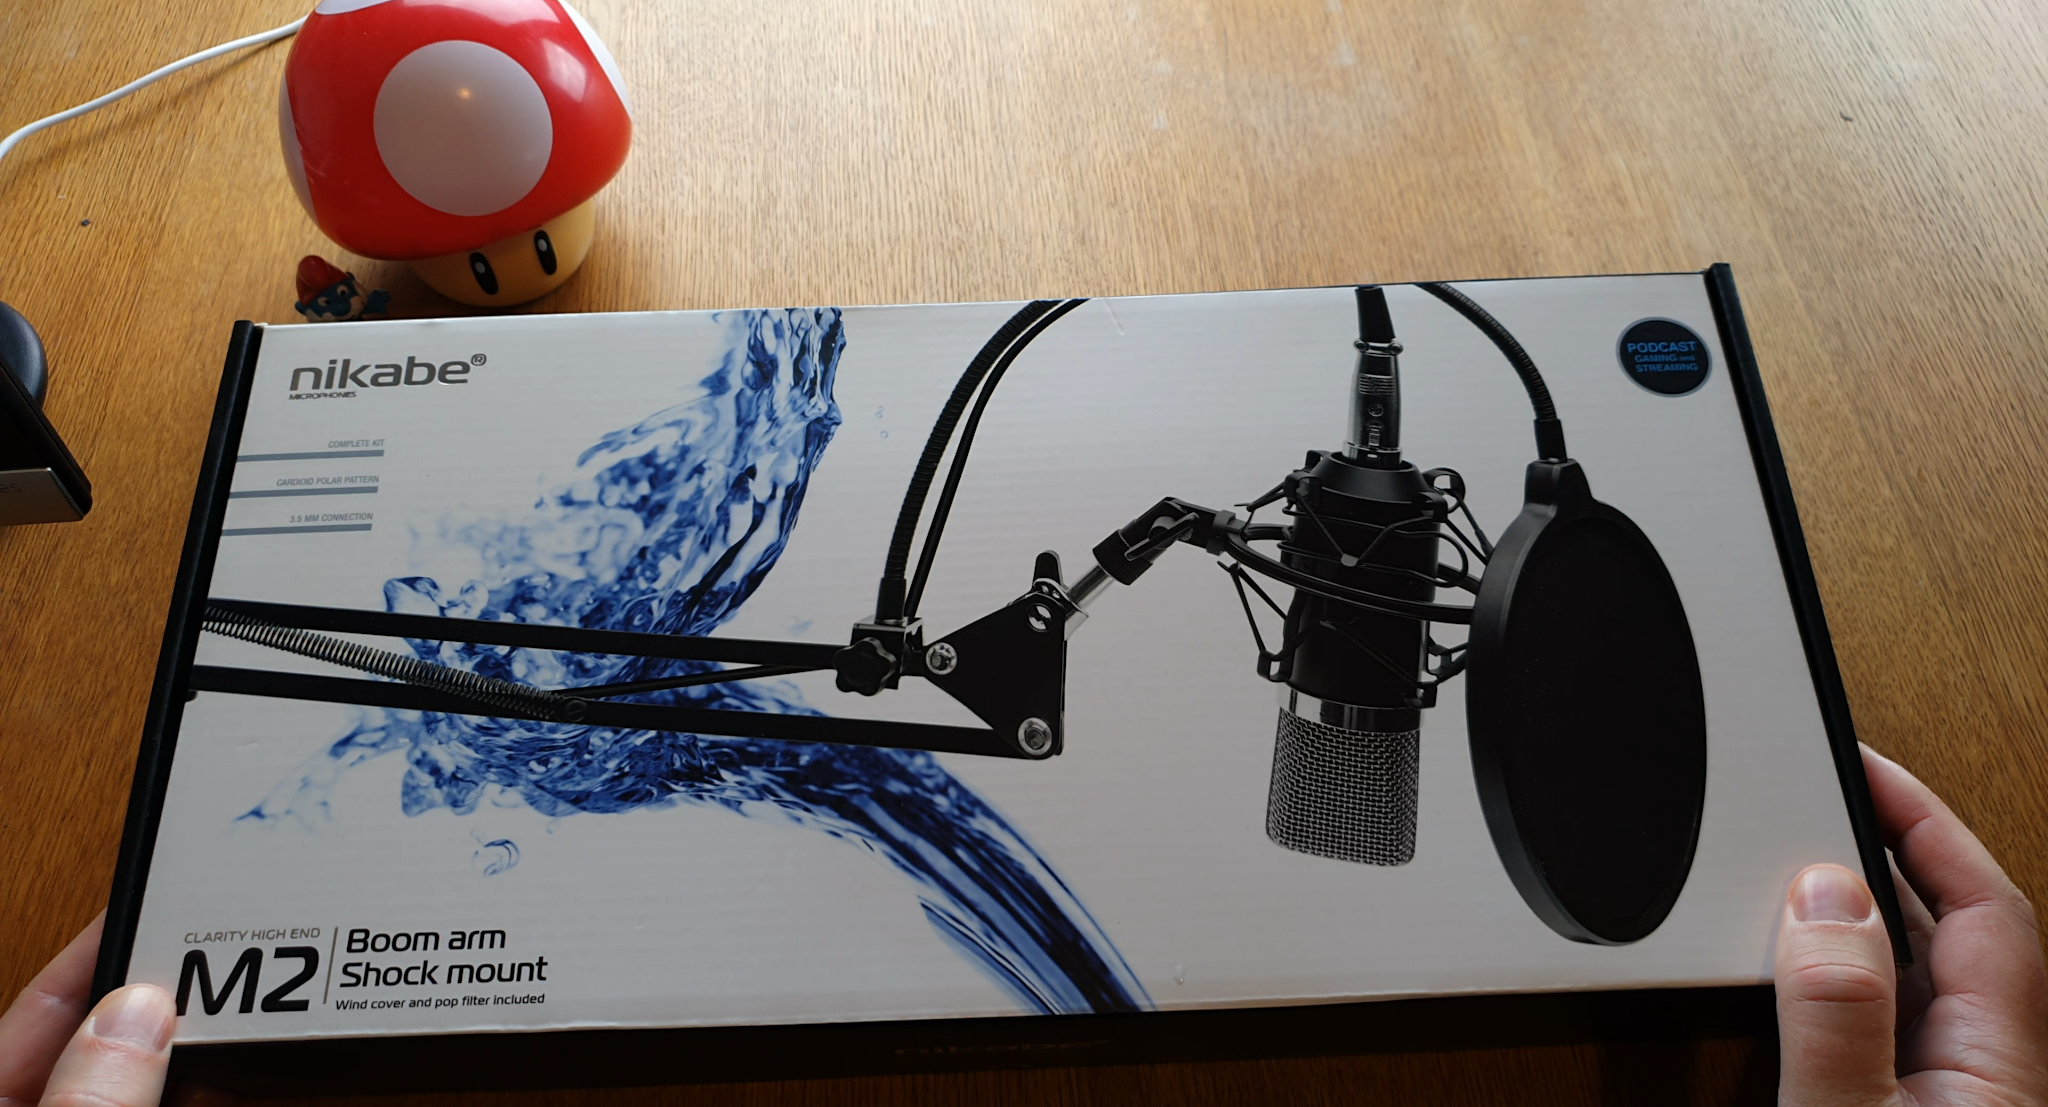 Unboxing of Nikabe M-2 microphone kit for podcasting, video production, streaming & gaming